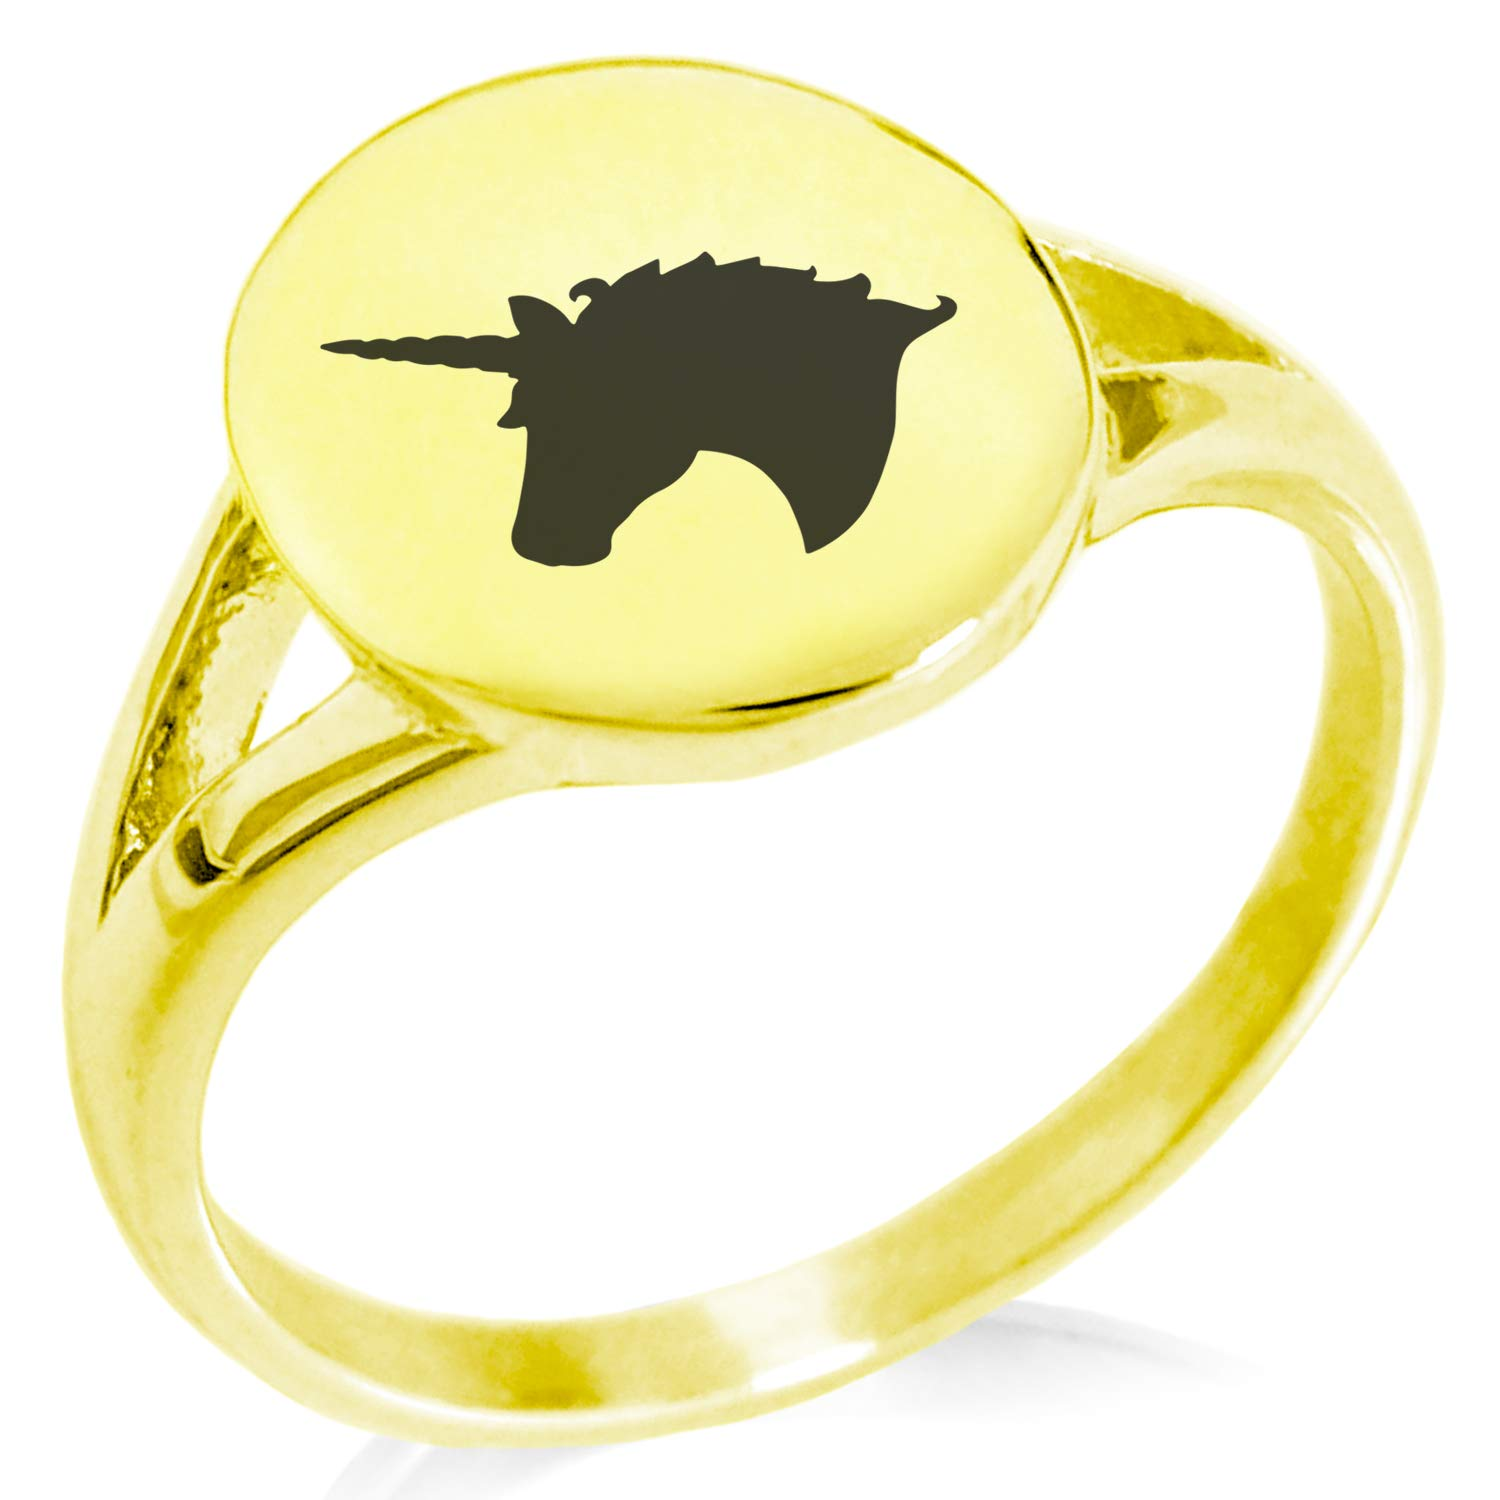 Tioneer Stainless Steel Unicorn Minimalist Oval Top Polished Statement Ring